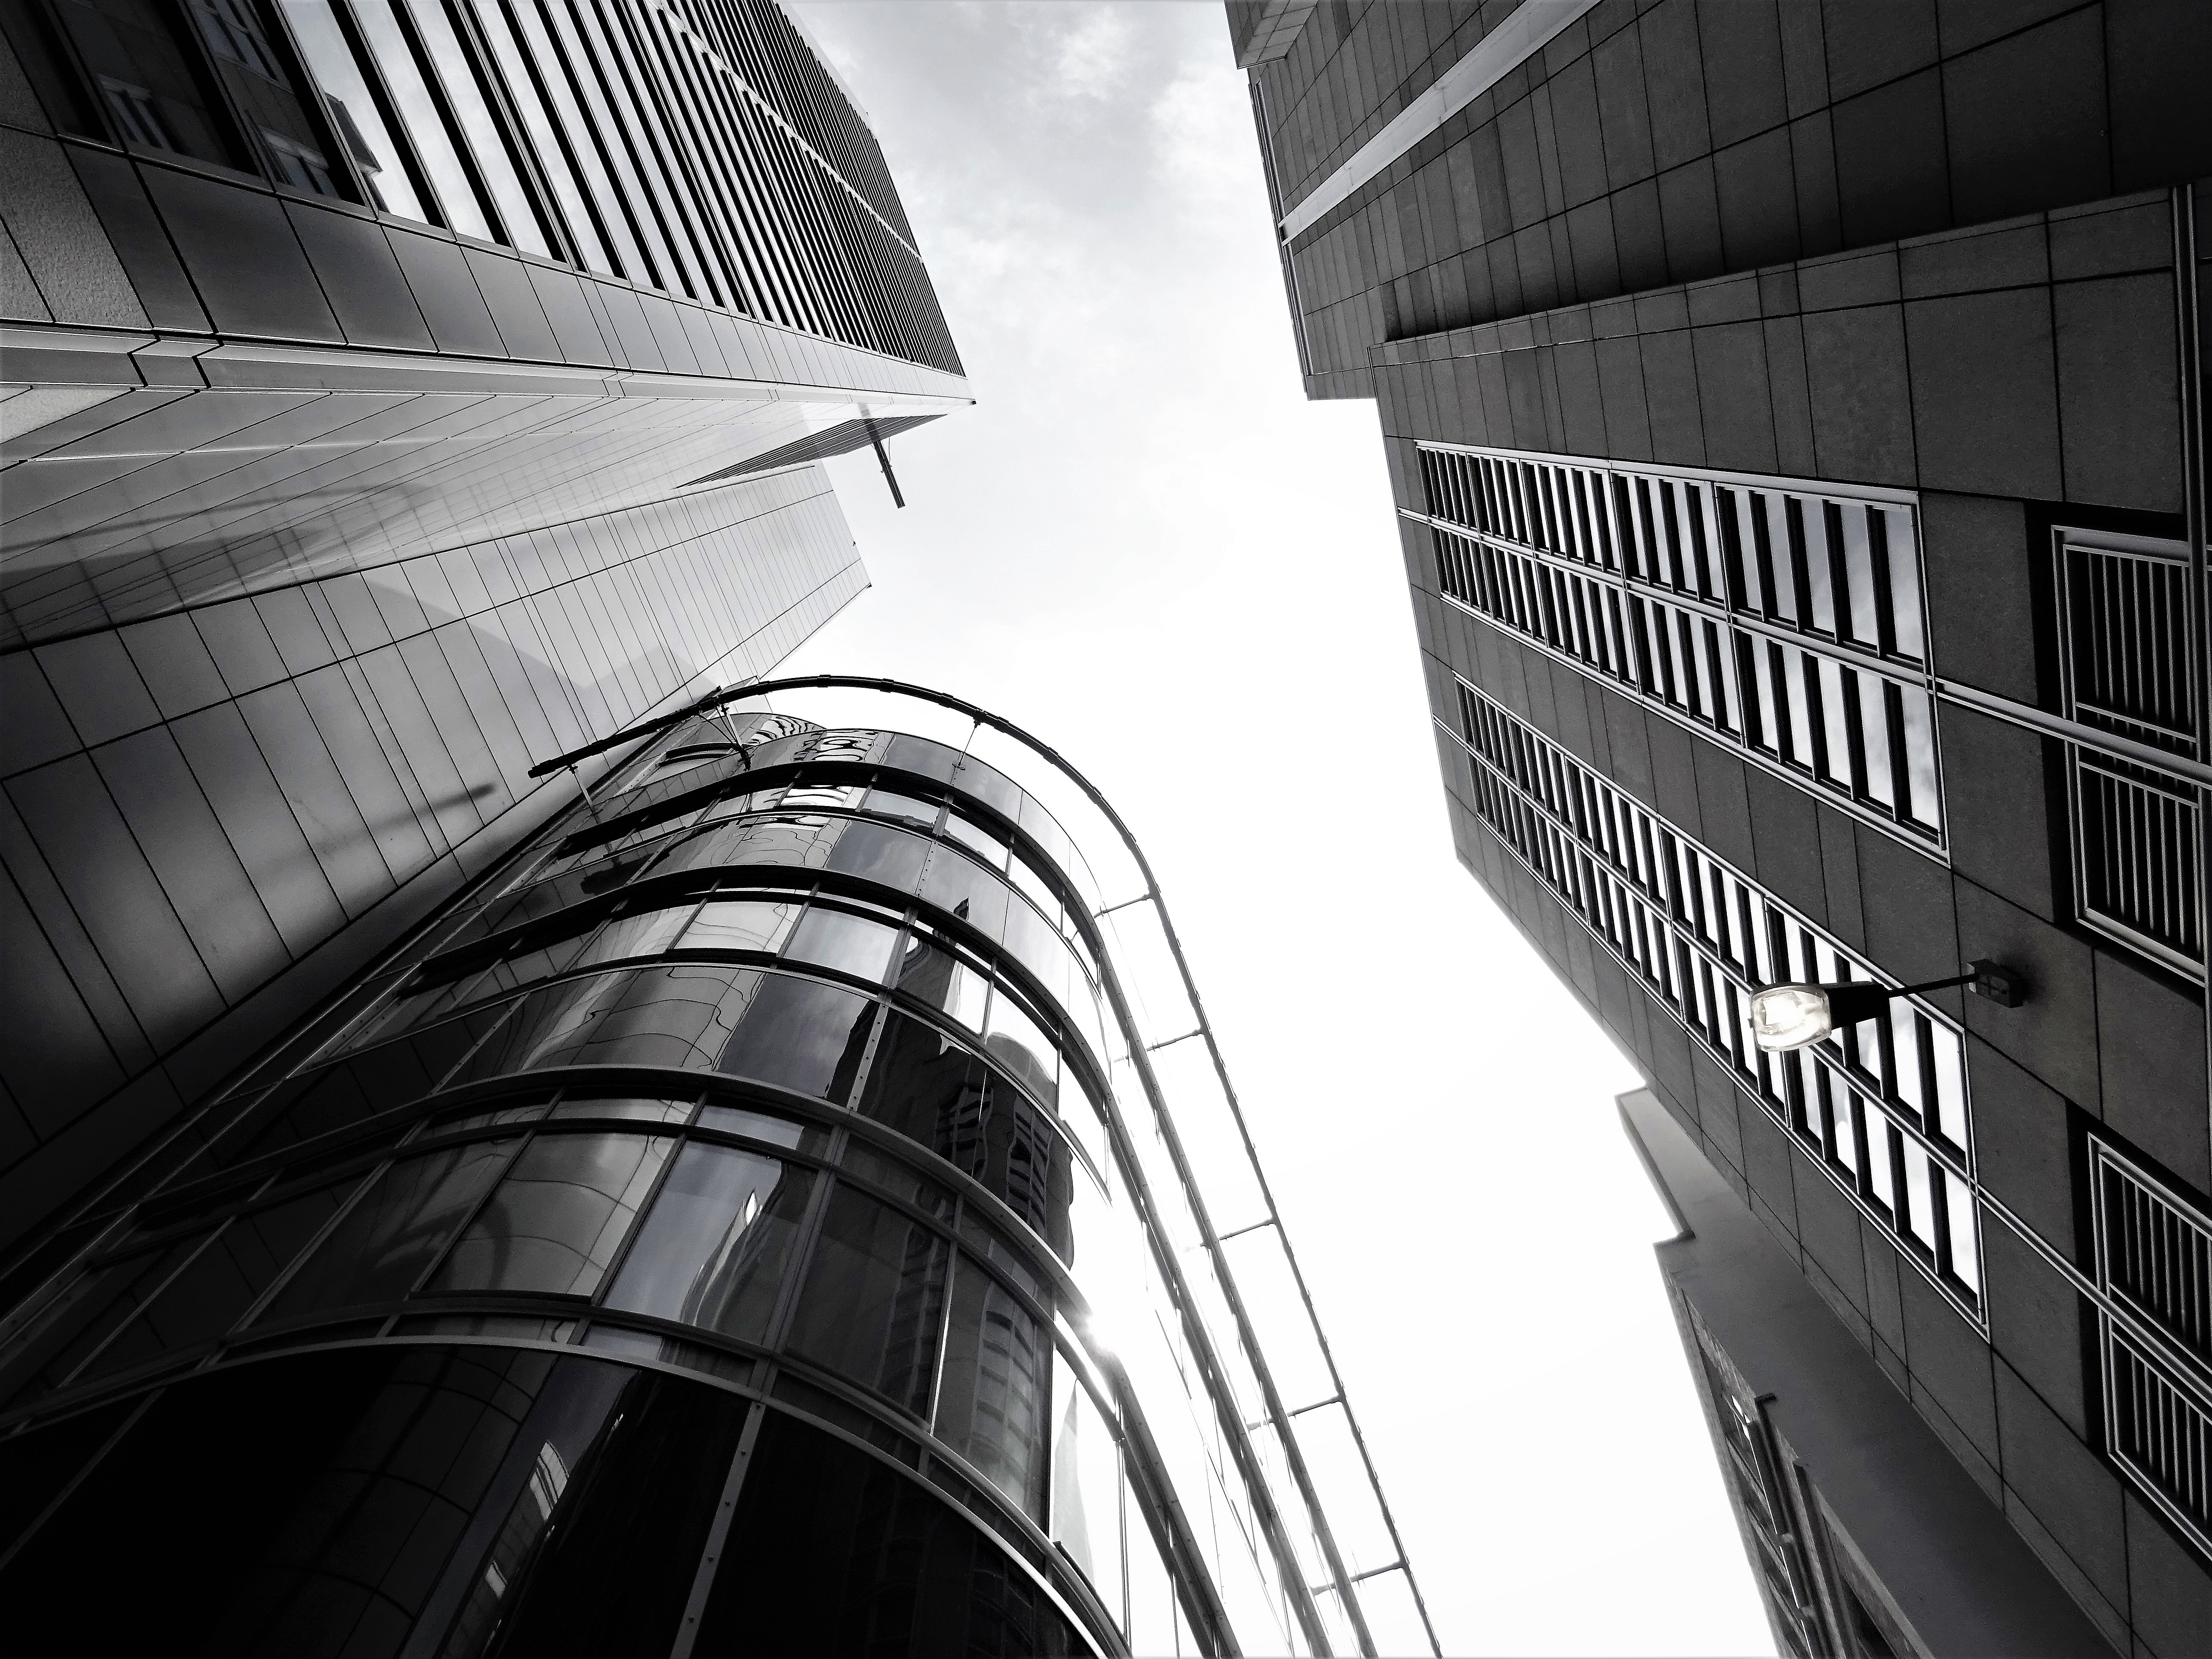 Free Photo Grayscale Photograph Of Buildings Office Windows Urban Free Download Jooinn